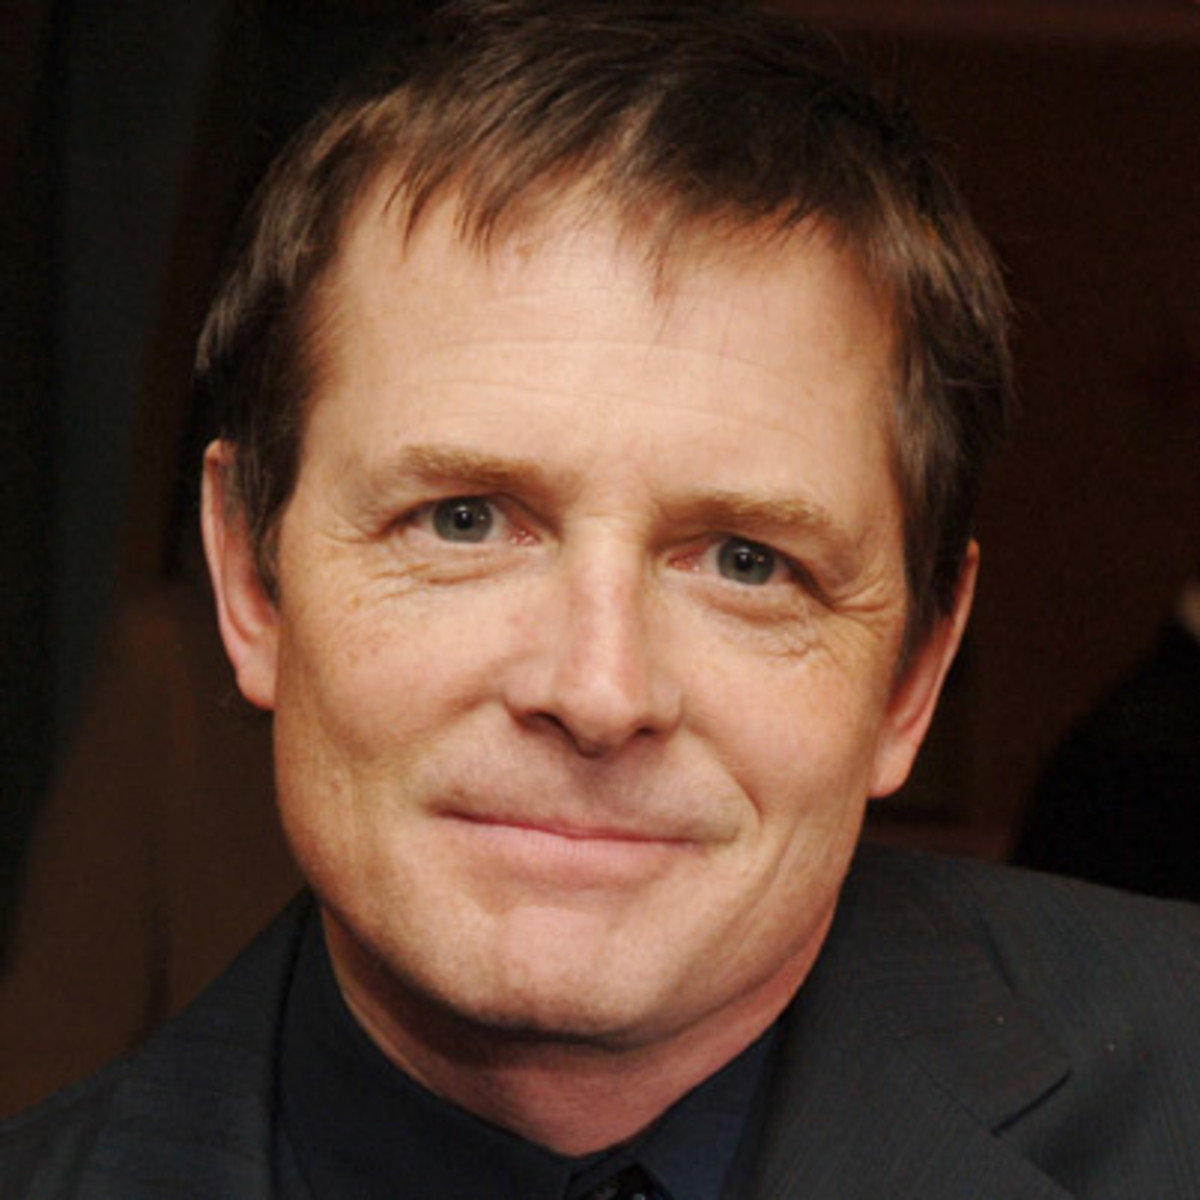 a biography of michael andrew fox Michael c fox is an english actor and musician who portrays andrew parker in the fifth and sixth series of downton abbey.